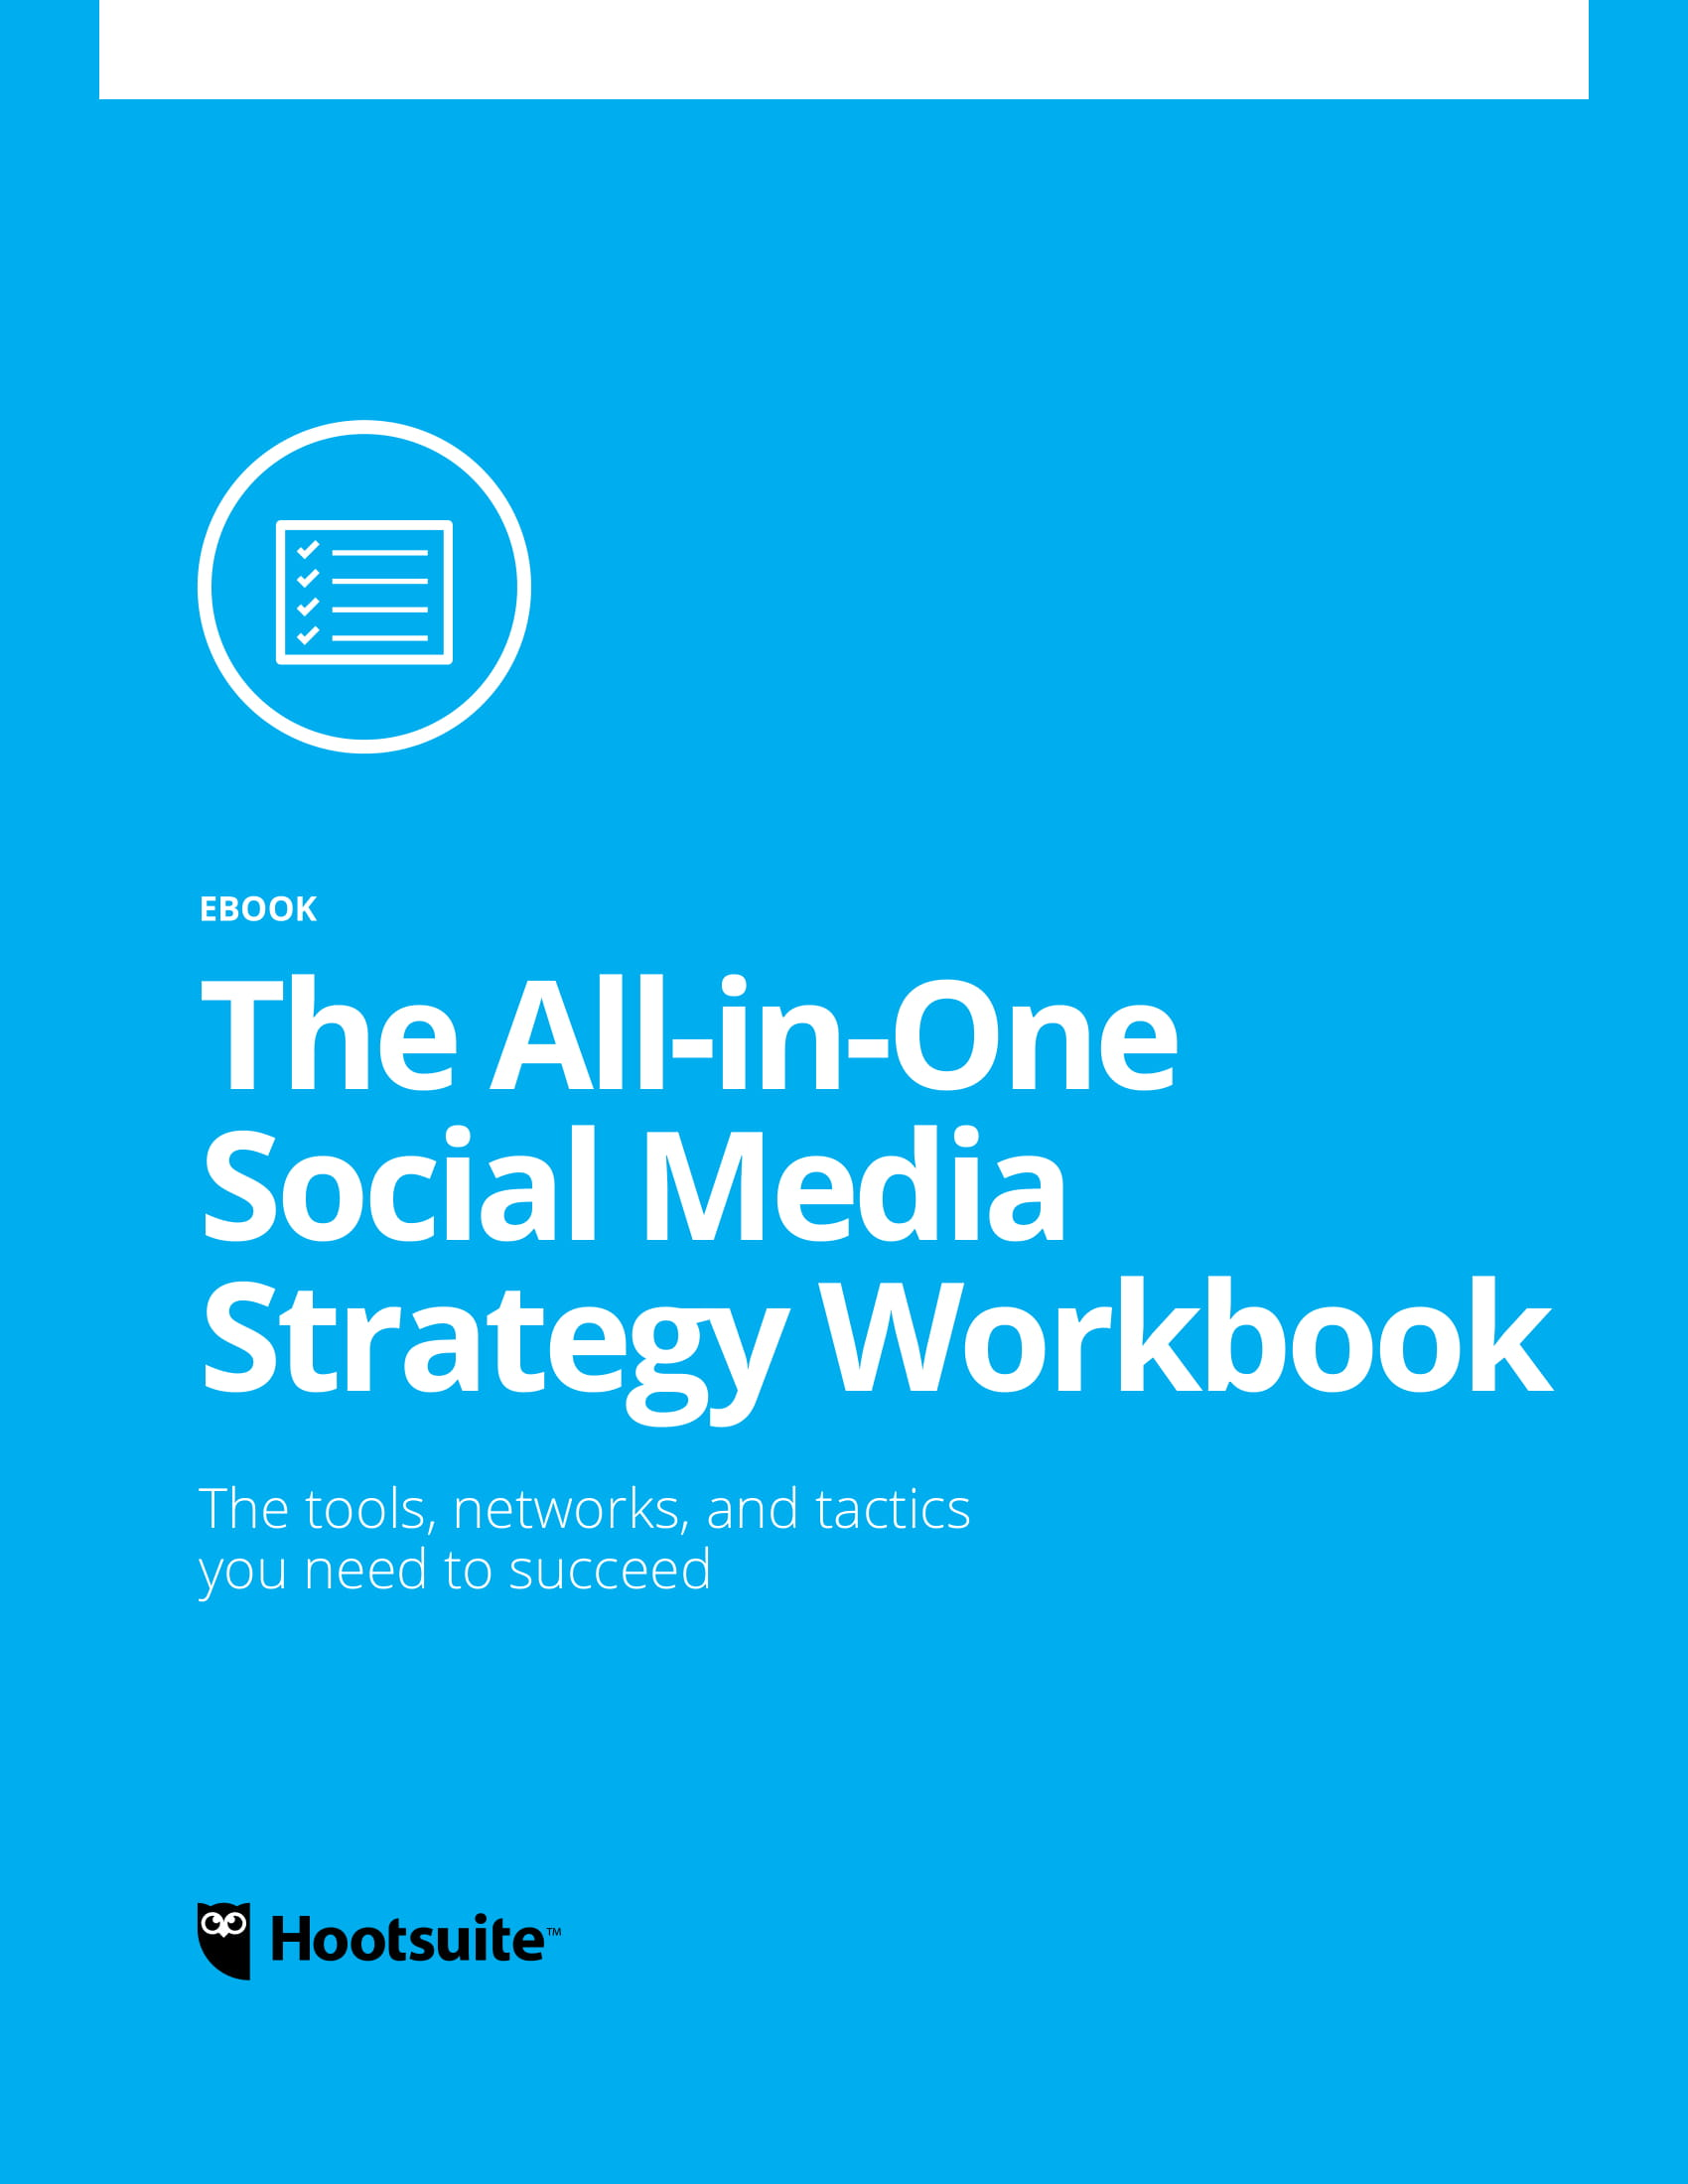 social media strategy workbook for business operational and tactical marketing plan example 01